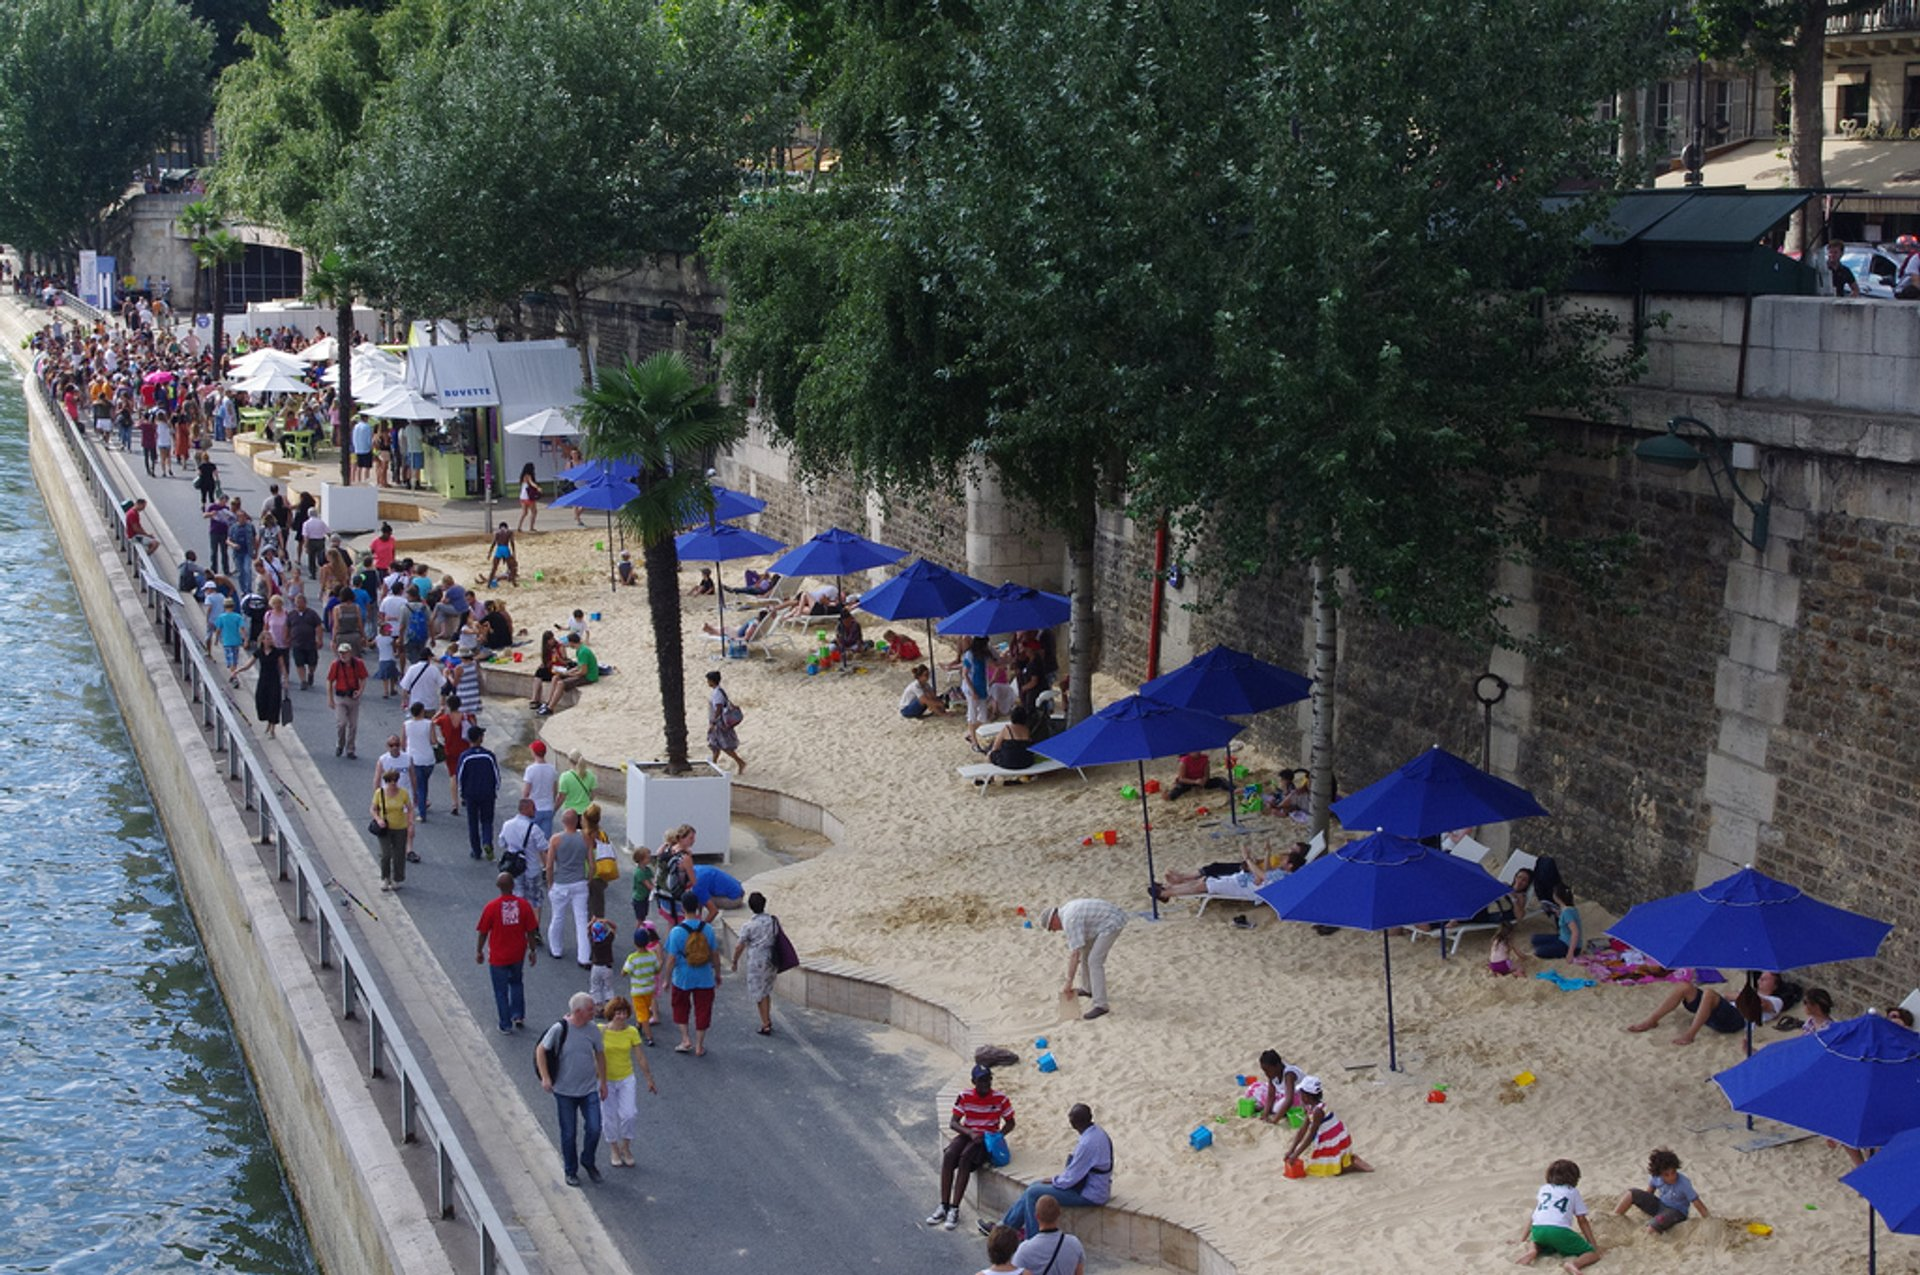 Best time to see Beaches on the Seine or Paris Plages in Paris 2019